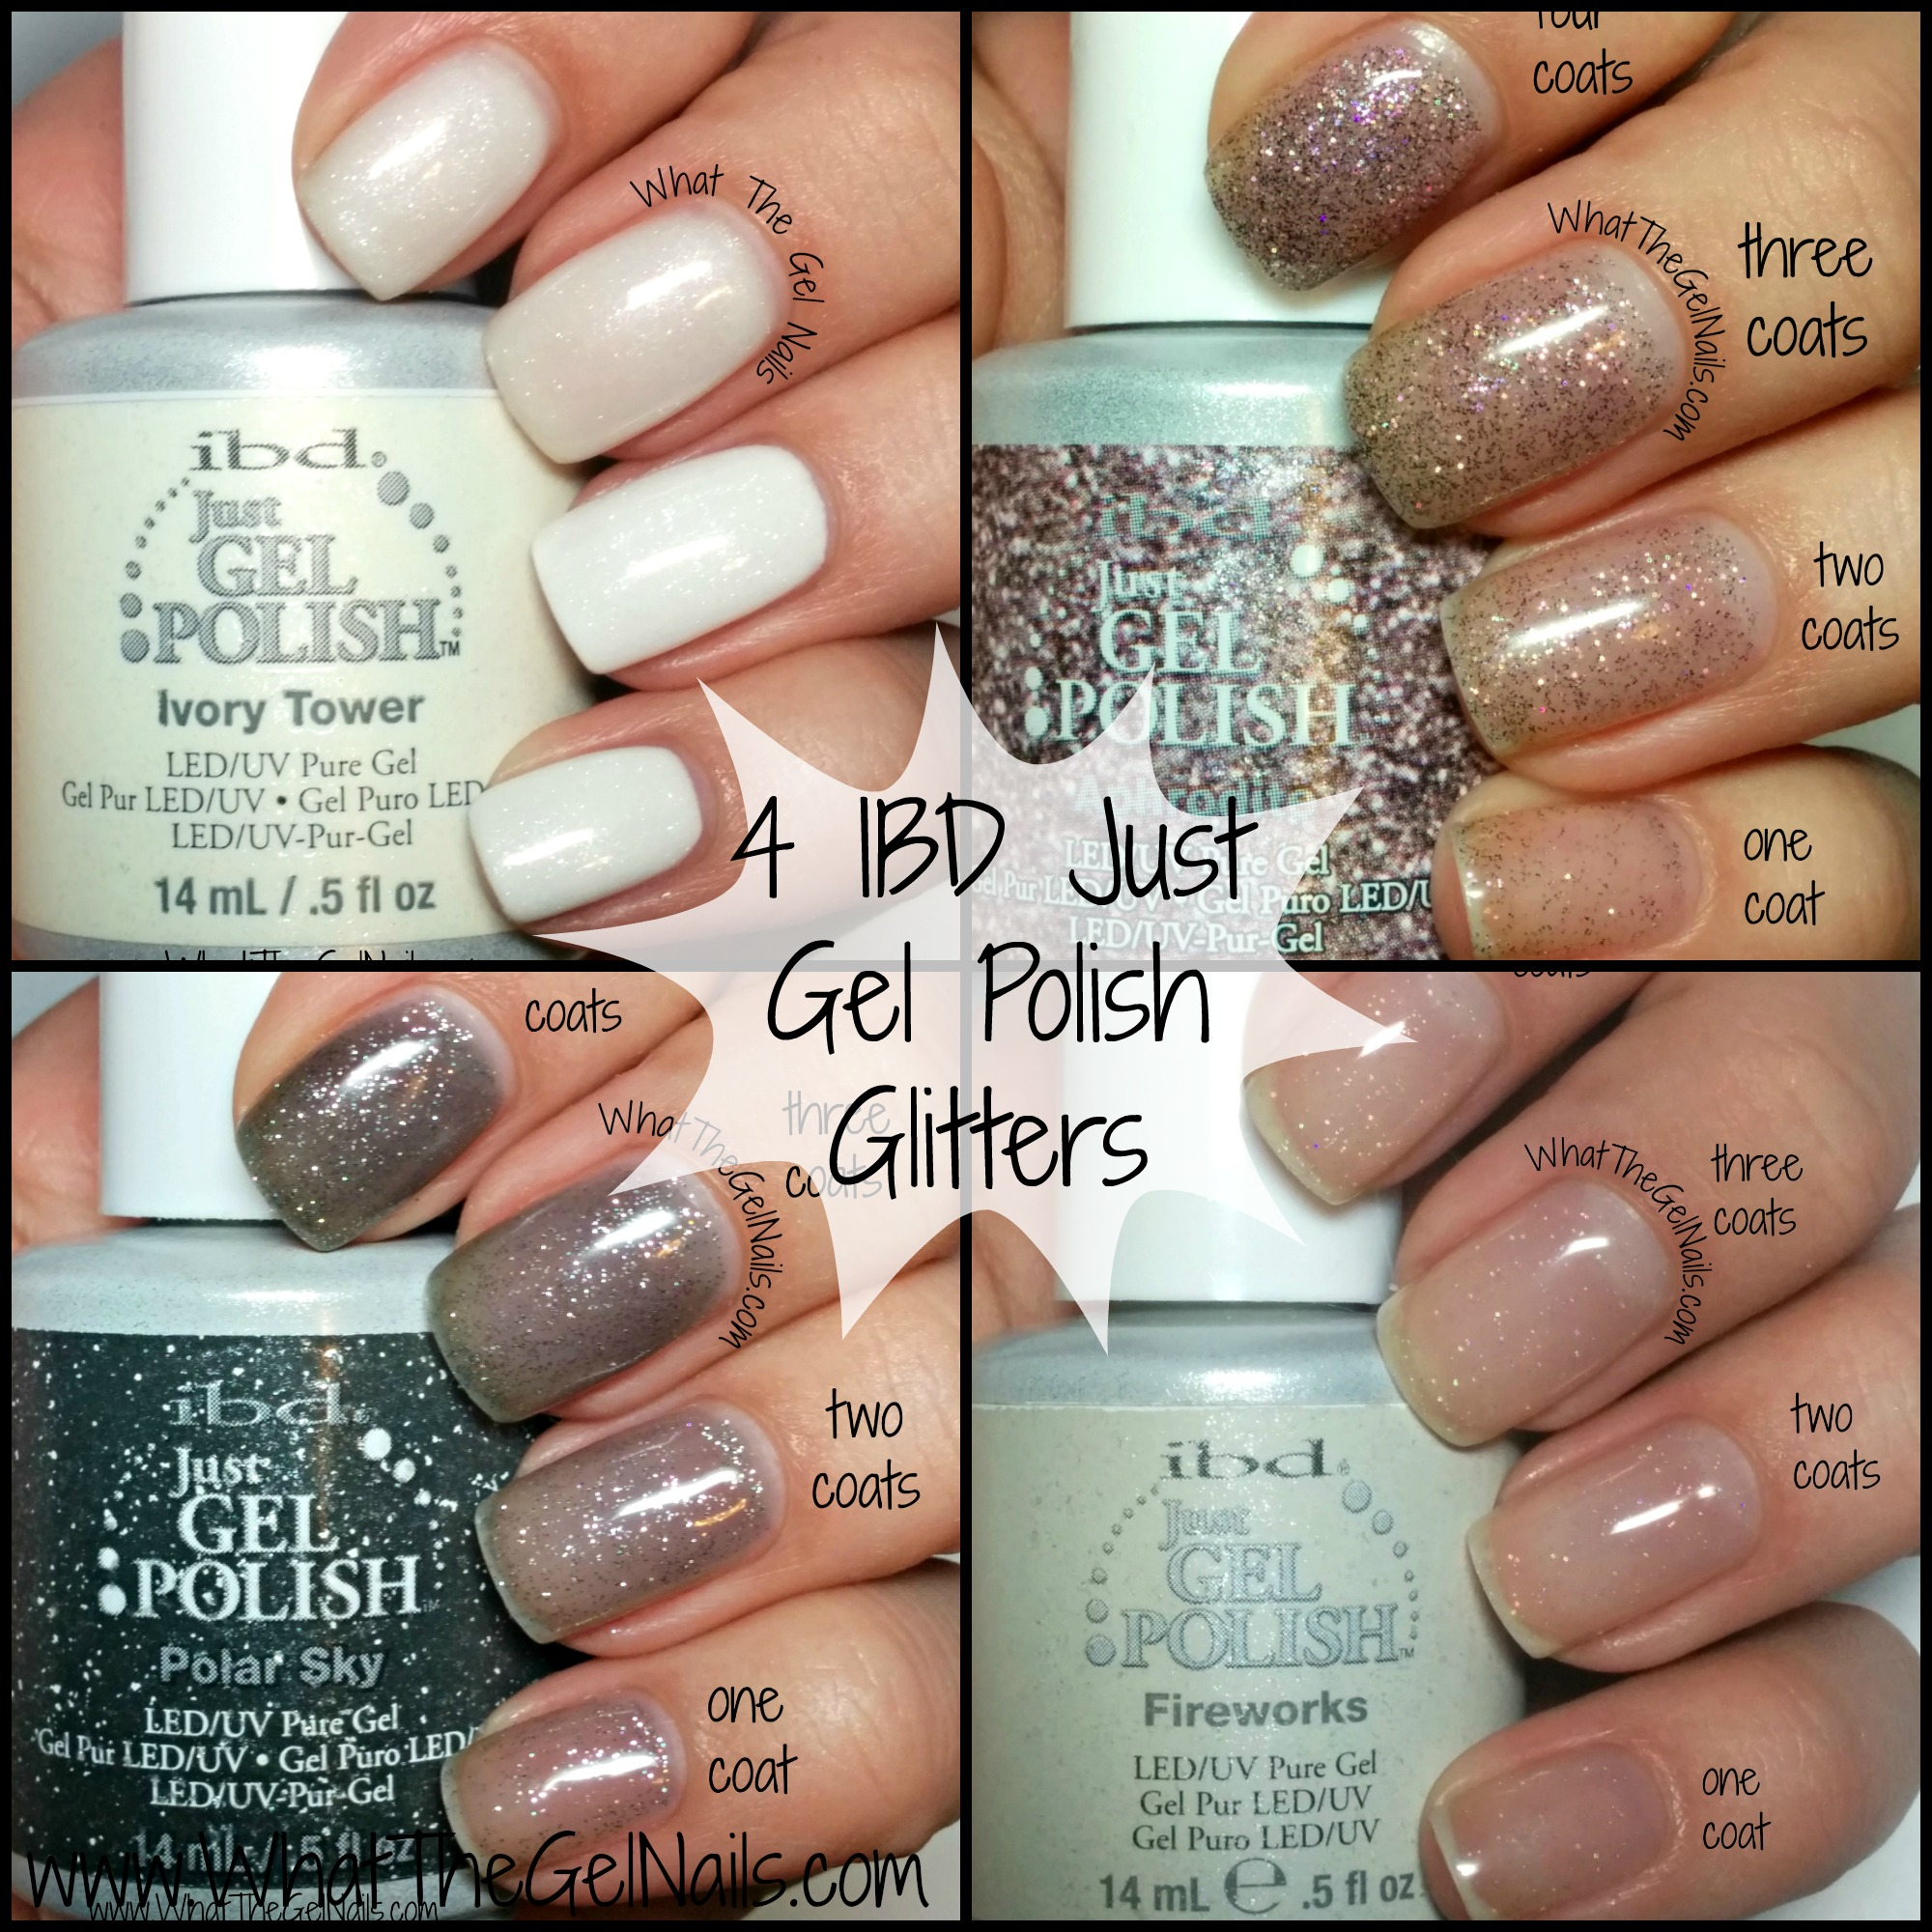 4 Ibd Just Gel Polish Glitters